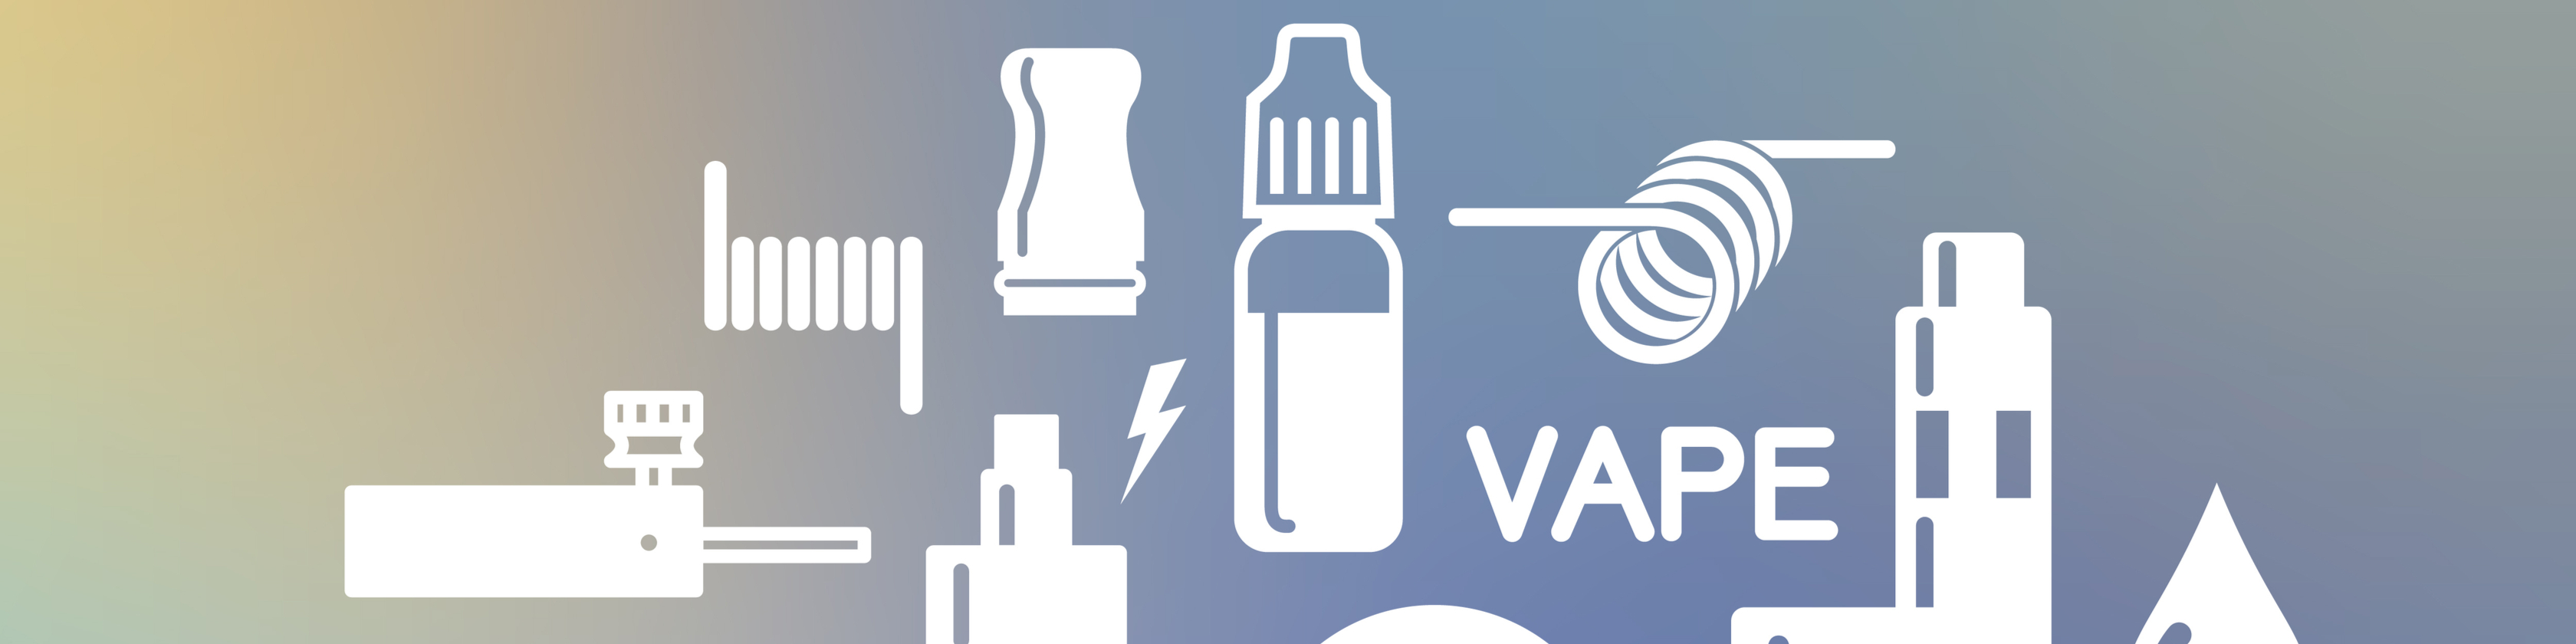 Value Vape's Products, Coupons, and Reviews